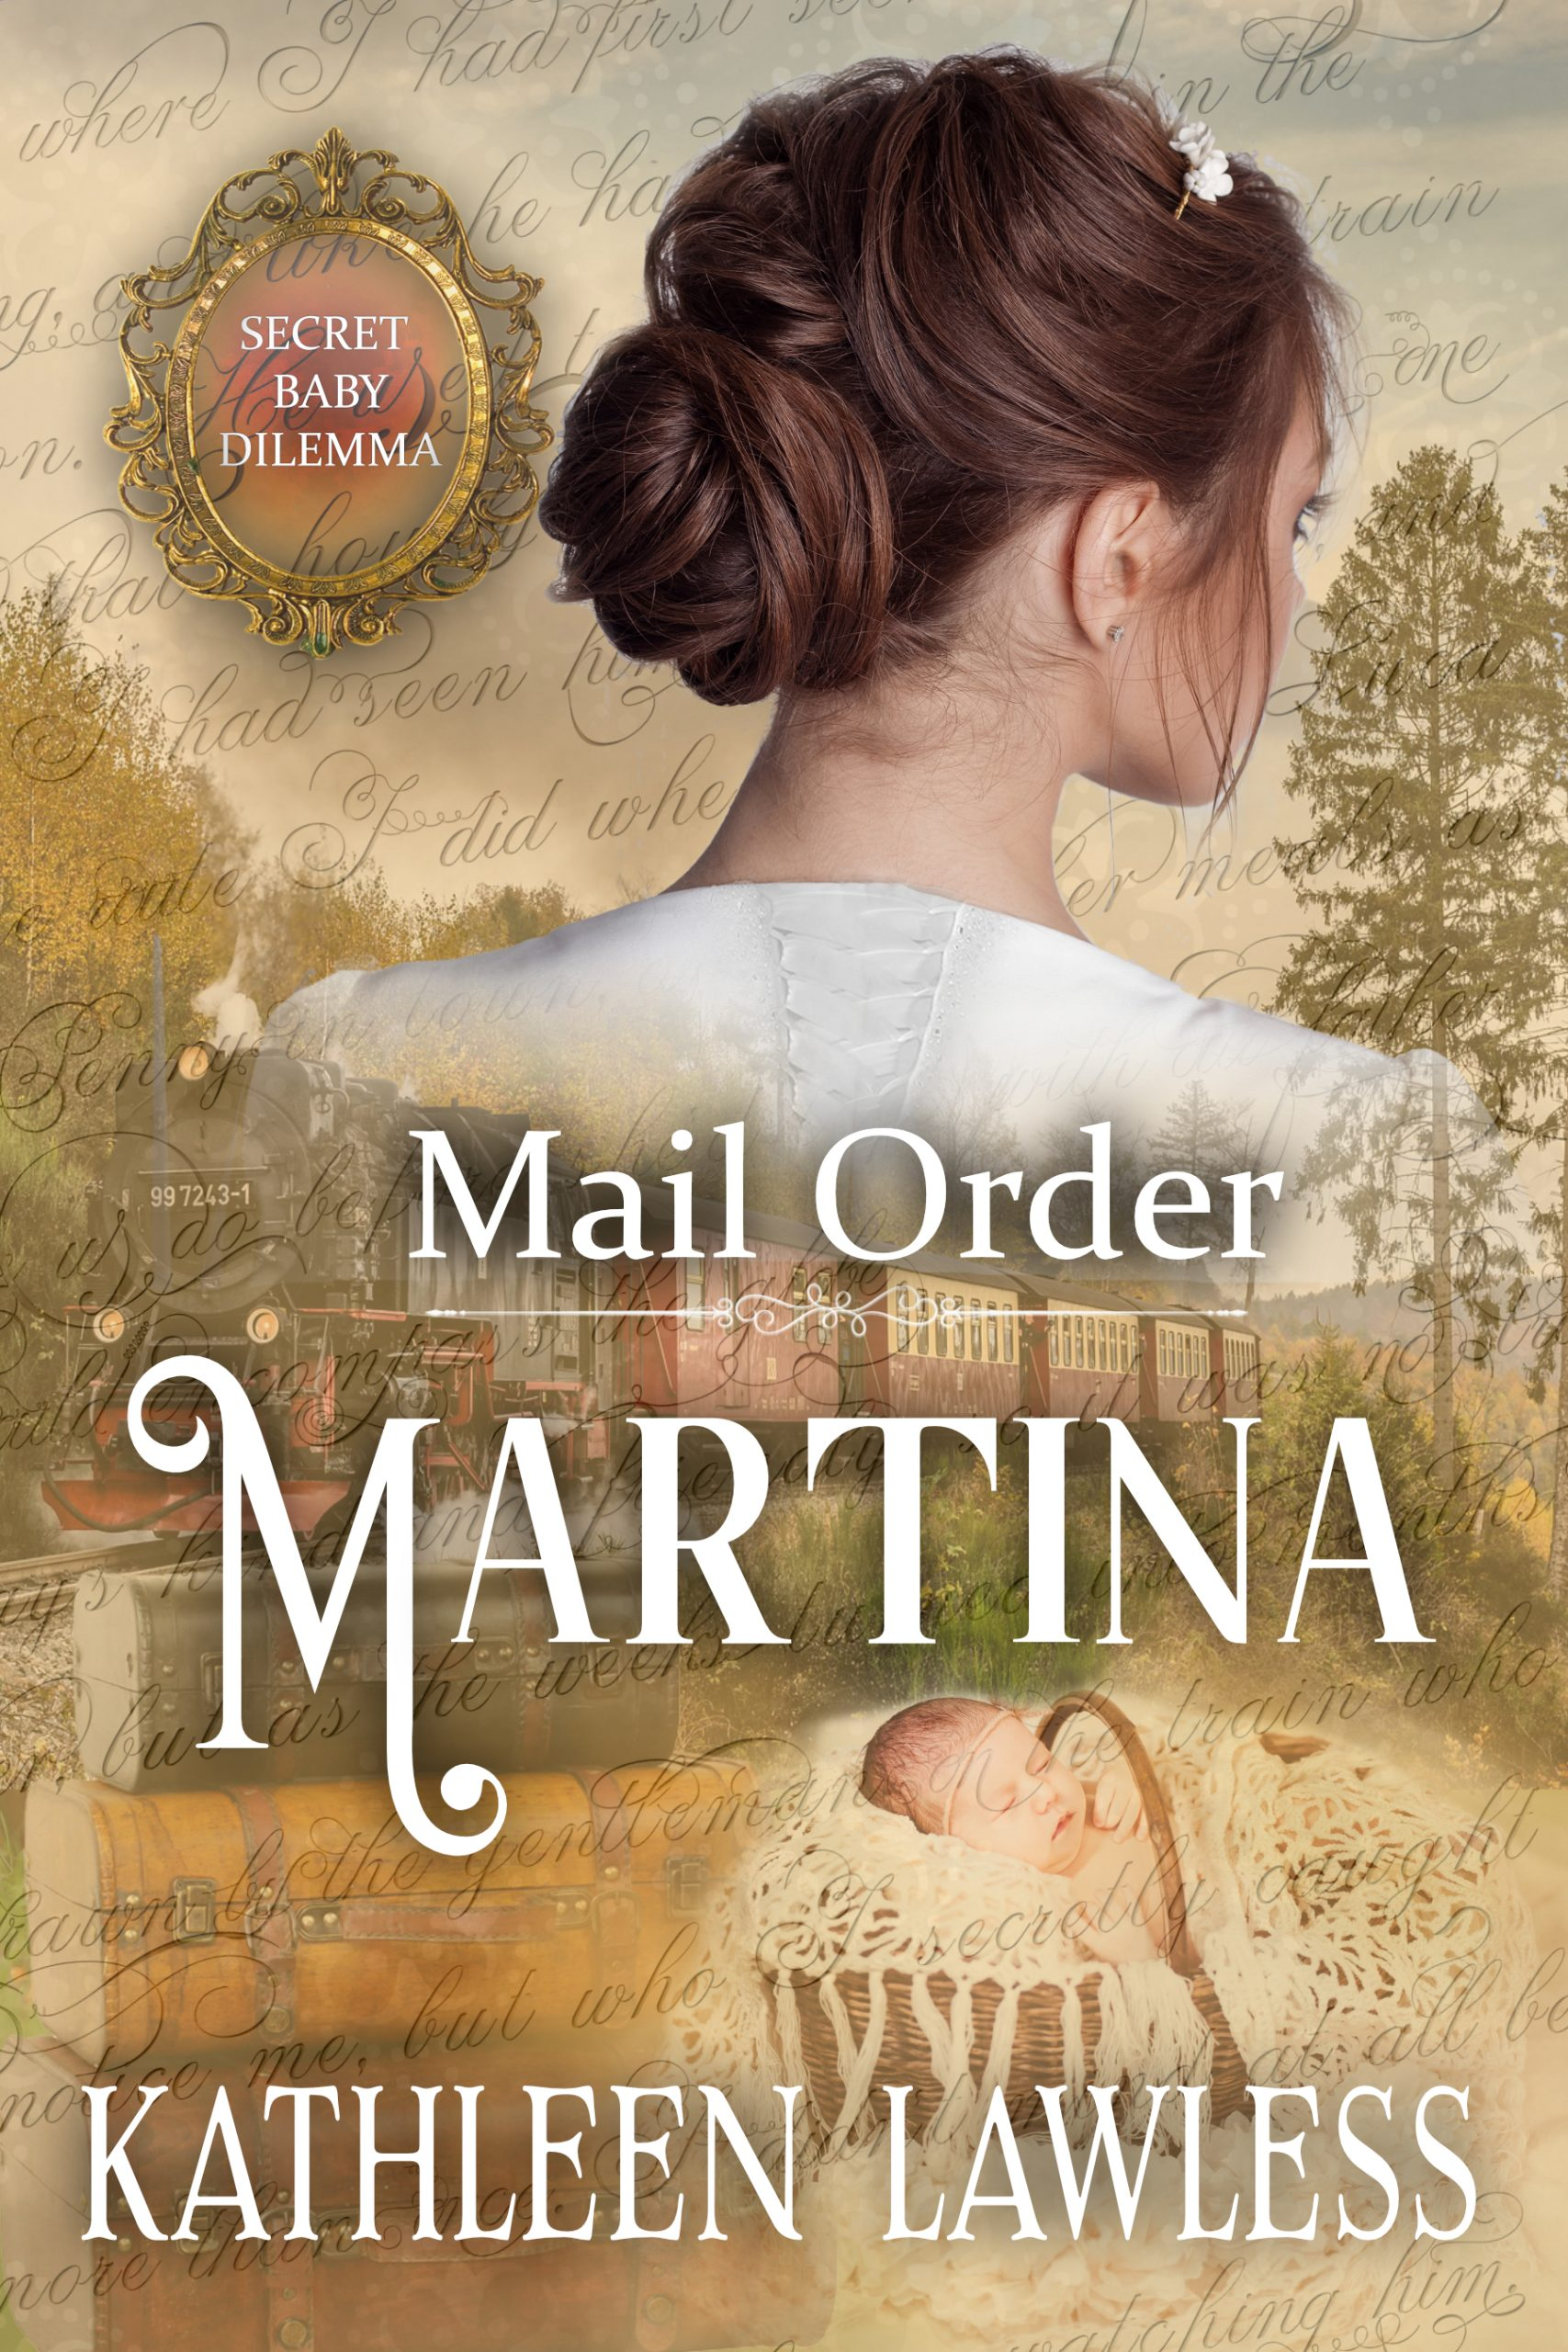 Mail Order Martina by Kathleen Lawless